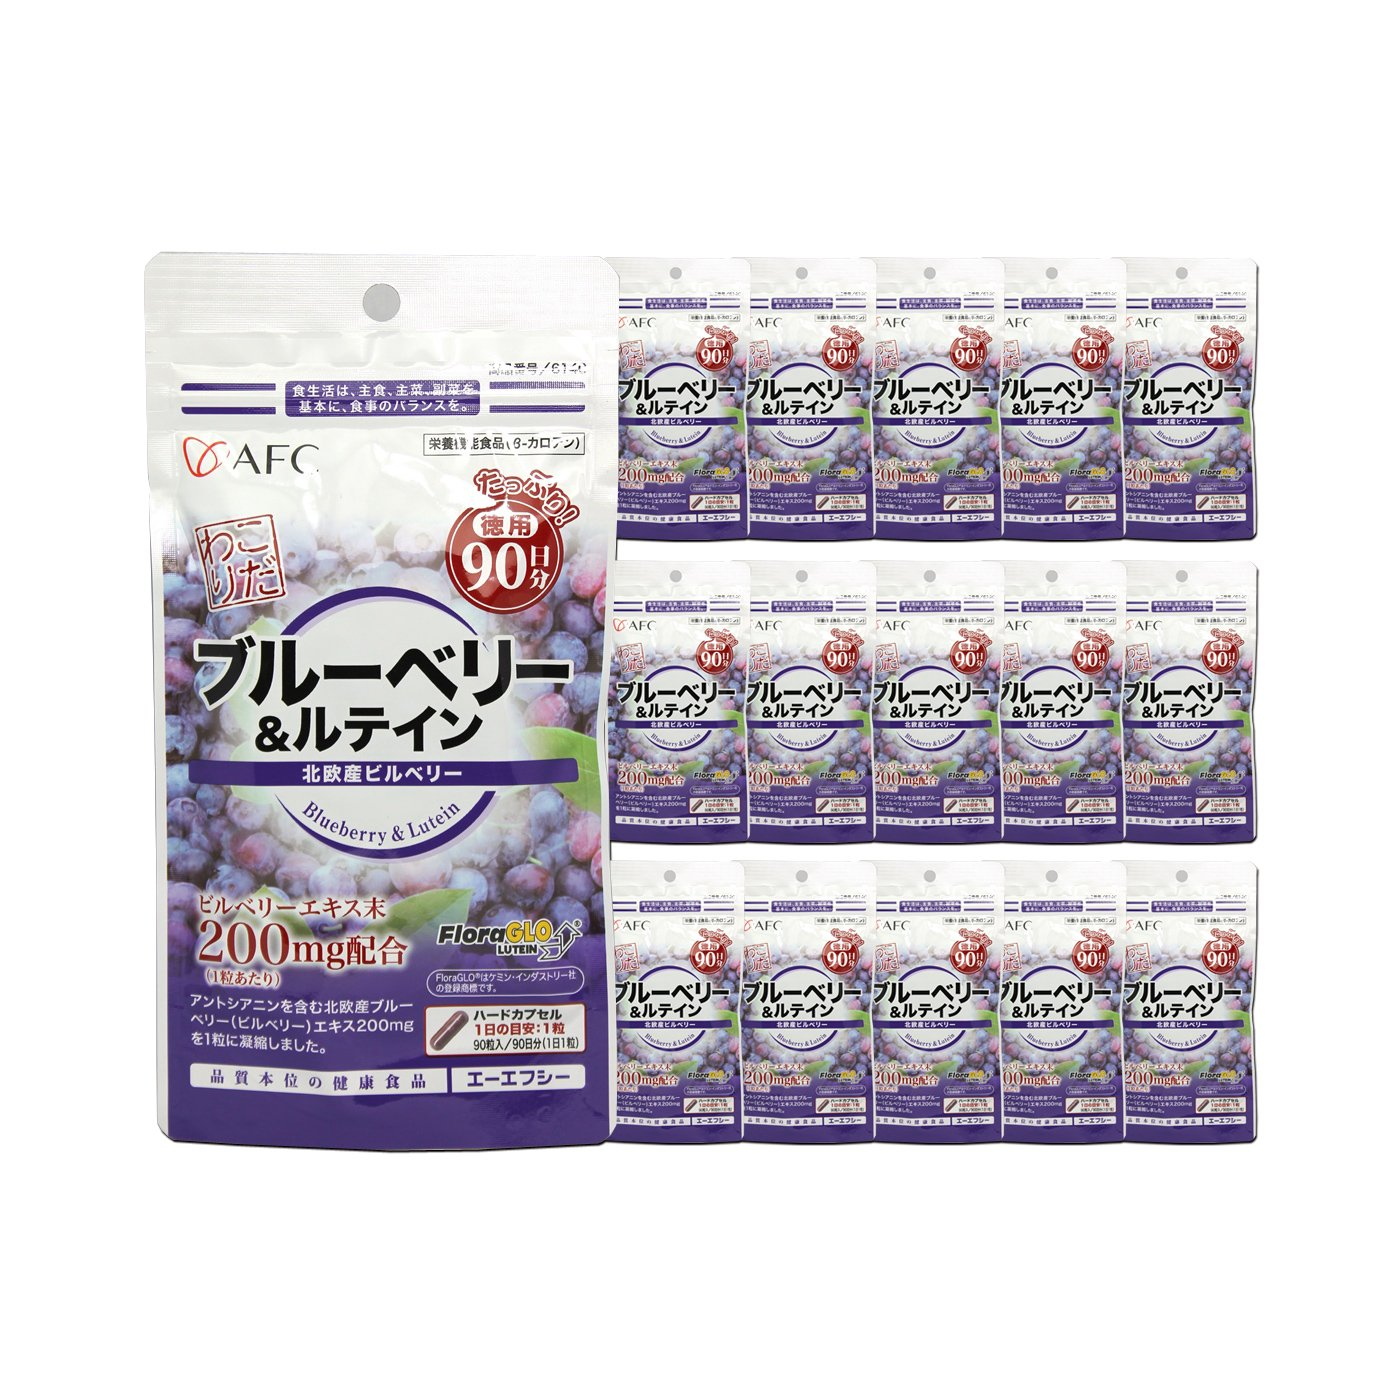 AFC Blueberry + lutein for 4 years (90 days series * 16 sets)